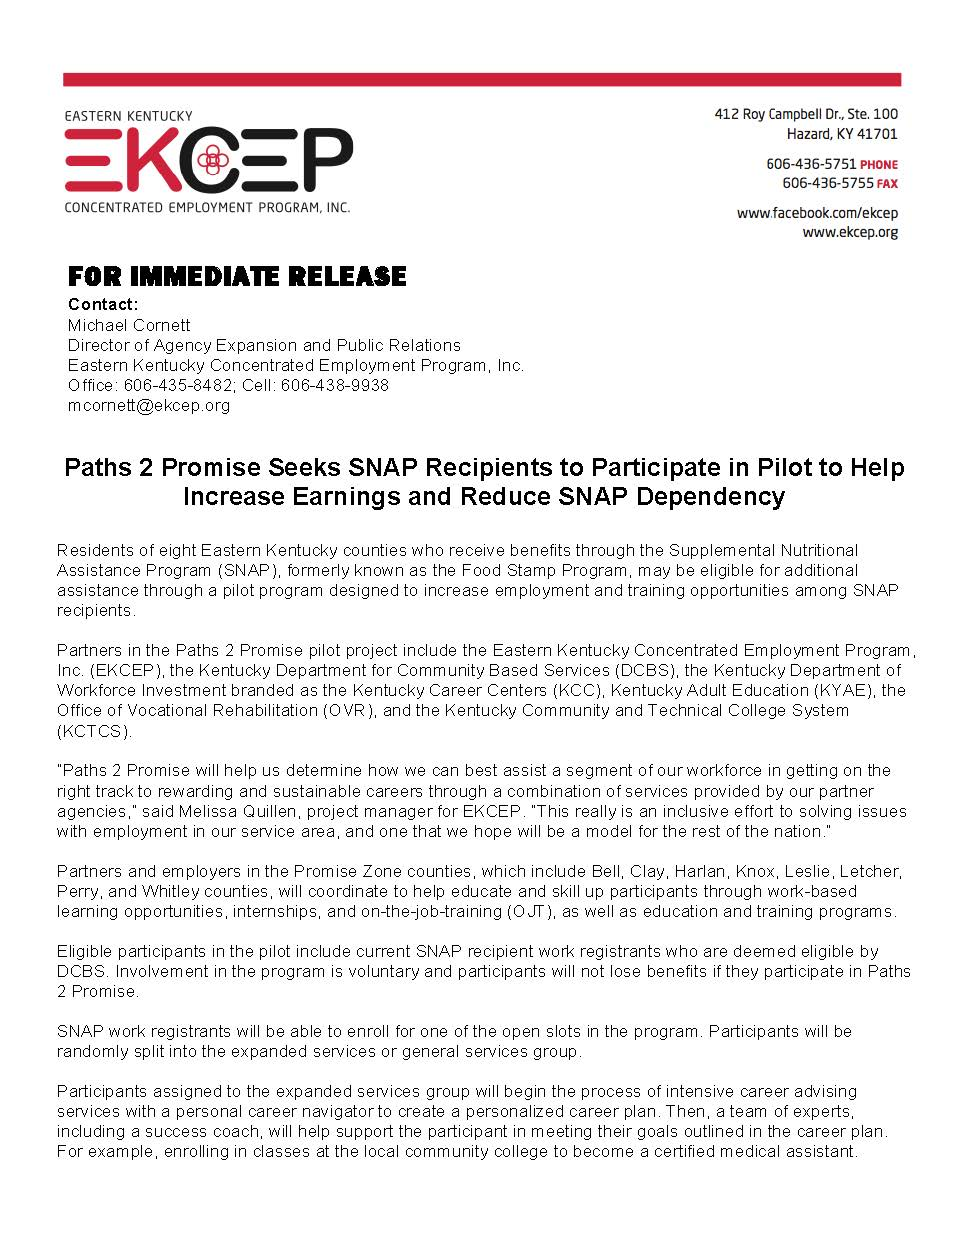 Paths 2 Promise Press Release Page 1